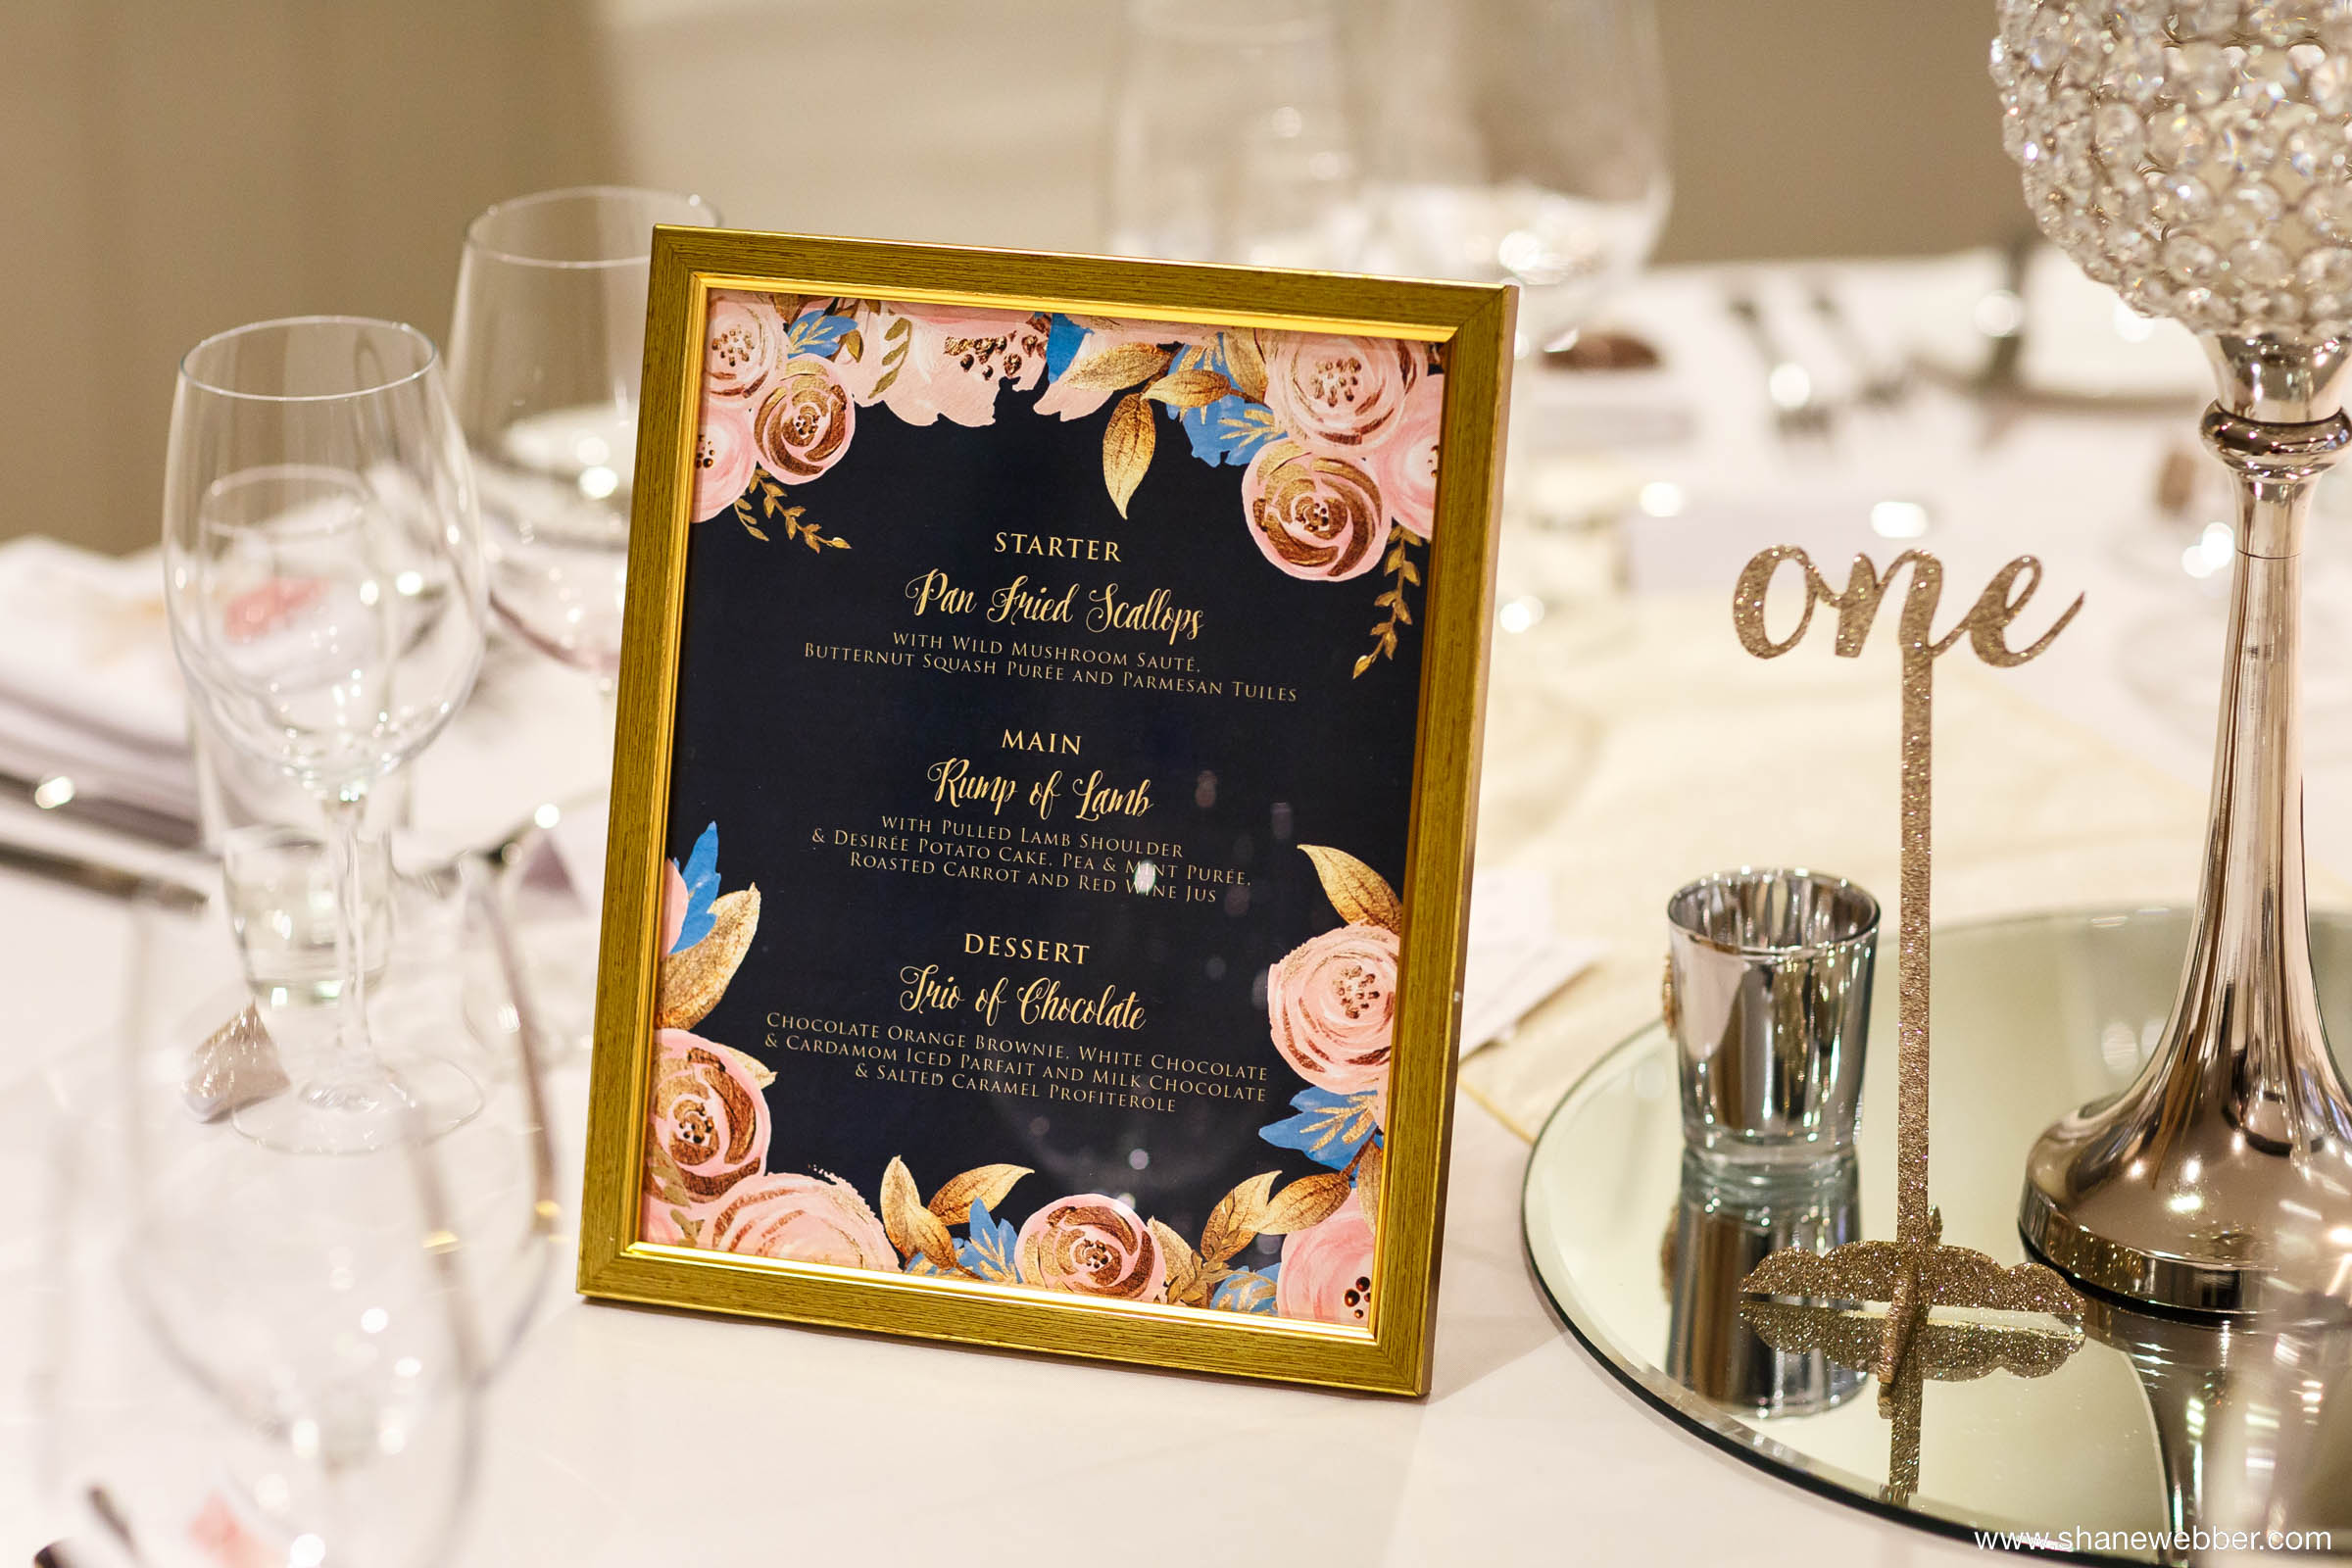 Table setting picture